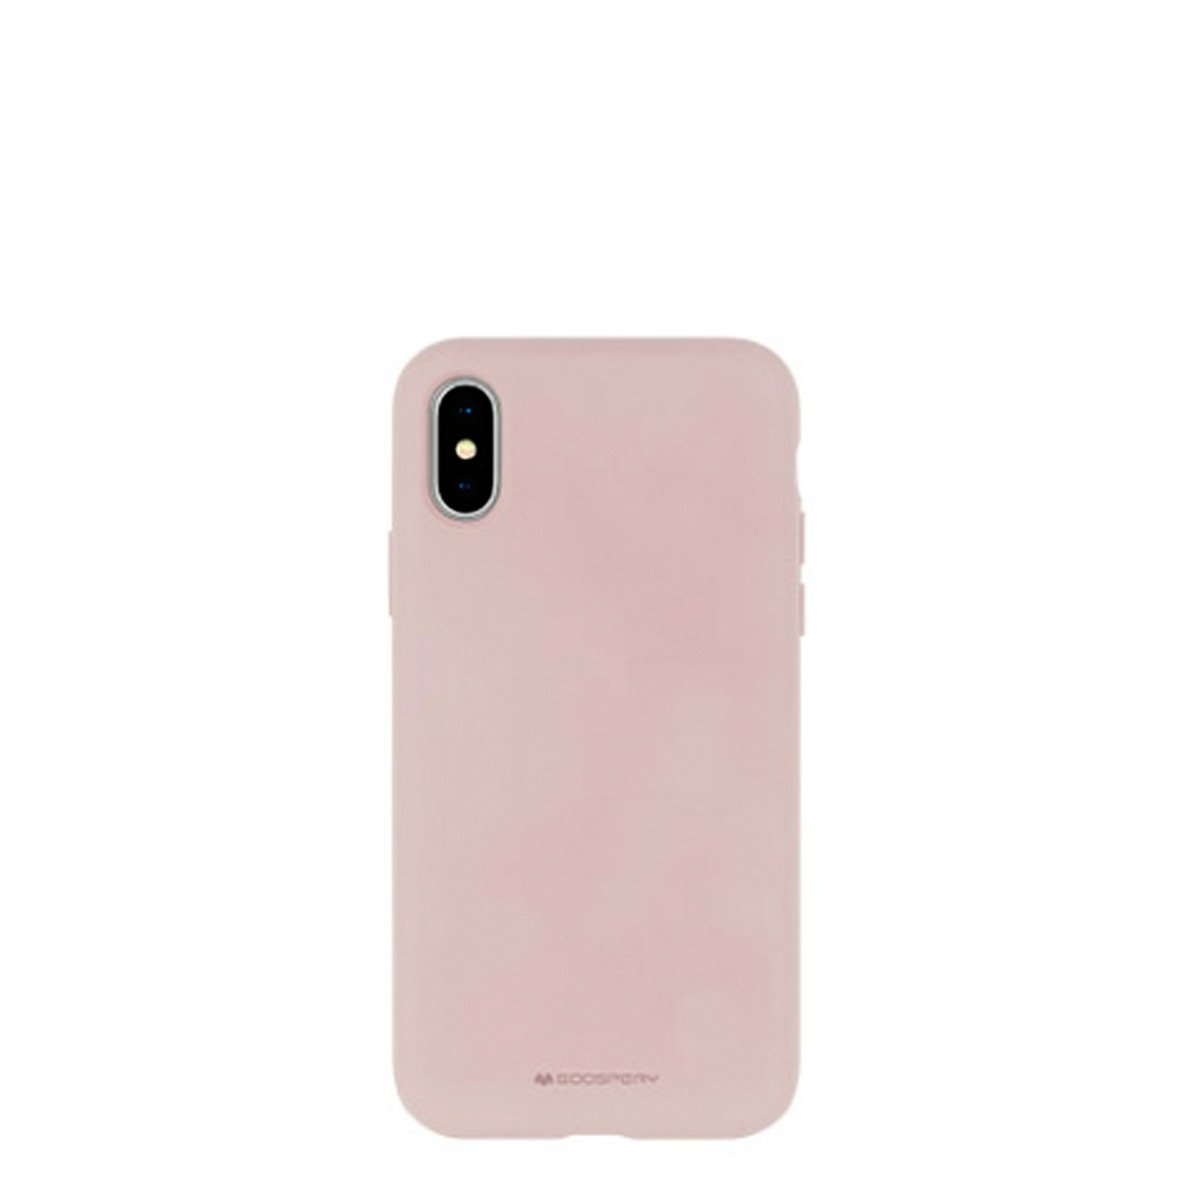 Capa de Smartphone Mercury Silicone Cover Apple iPhone 5/ 5s/ SE Rosa Areia